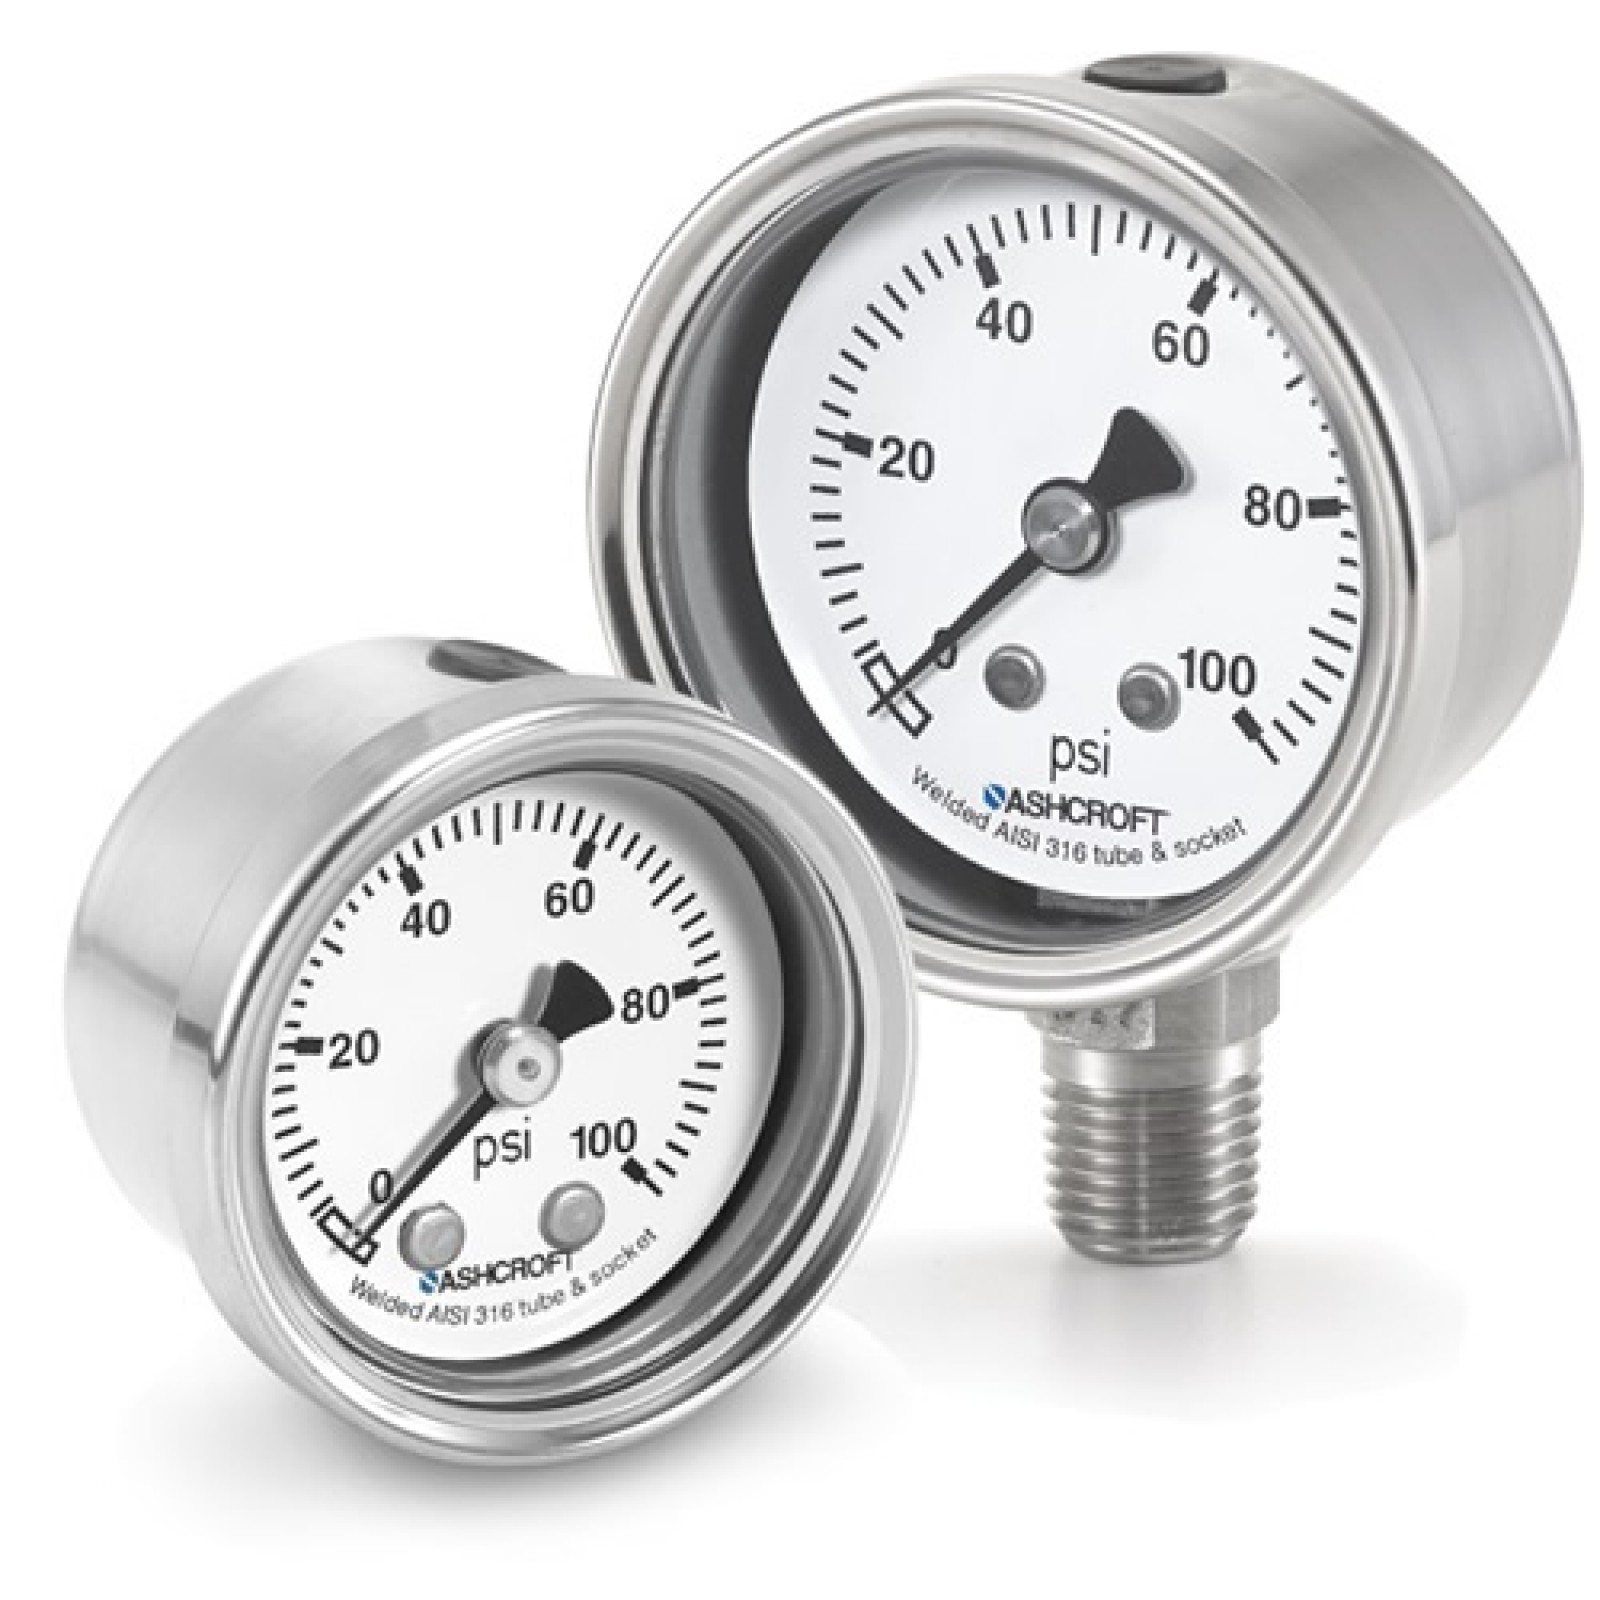 "63 1008S 02B XLL 10000#/KP - Pressure Gauge, 63mm stainless 1/4"" NPT Back conn & Case, Plus Performance, 0/10,000 psi"